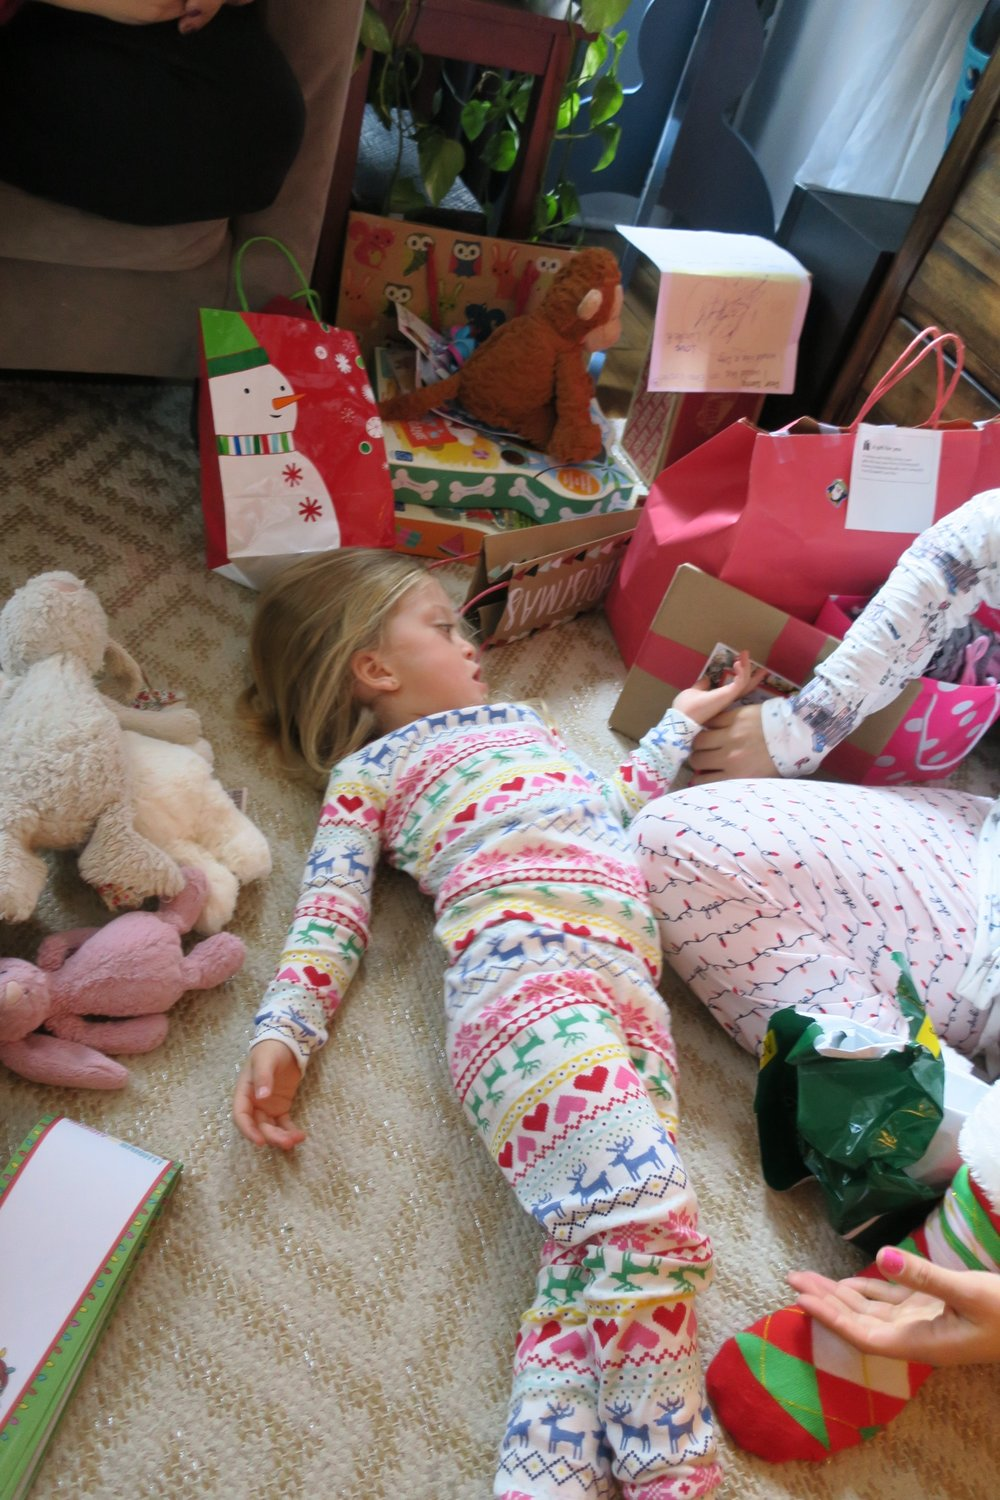 Tantrums can happen at any time, even on Christmas in the middle of opening gifts!